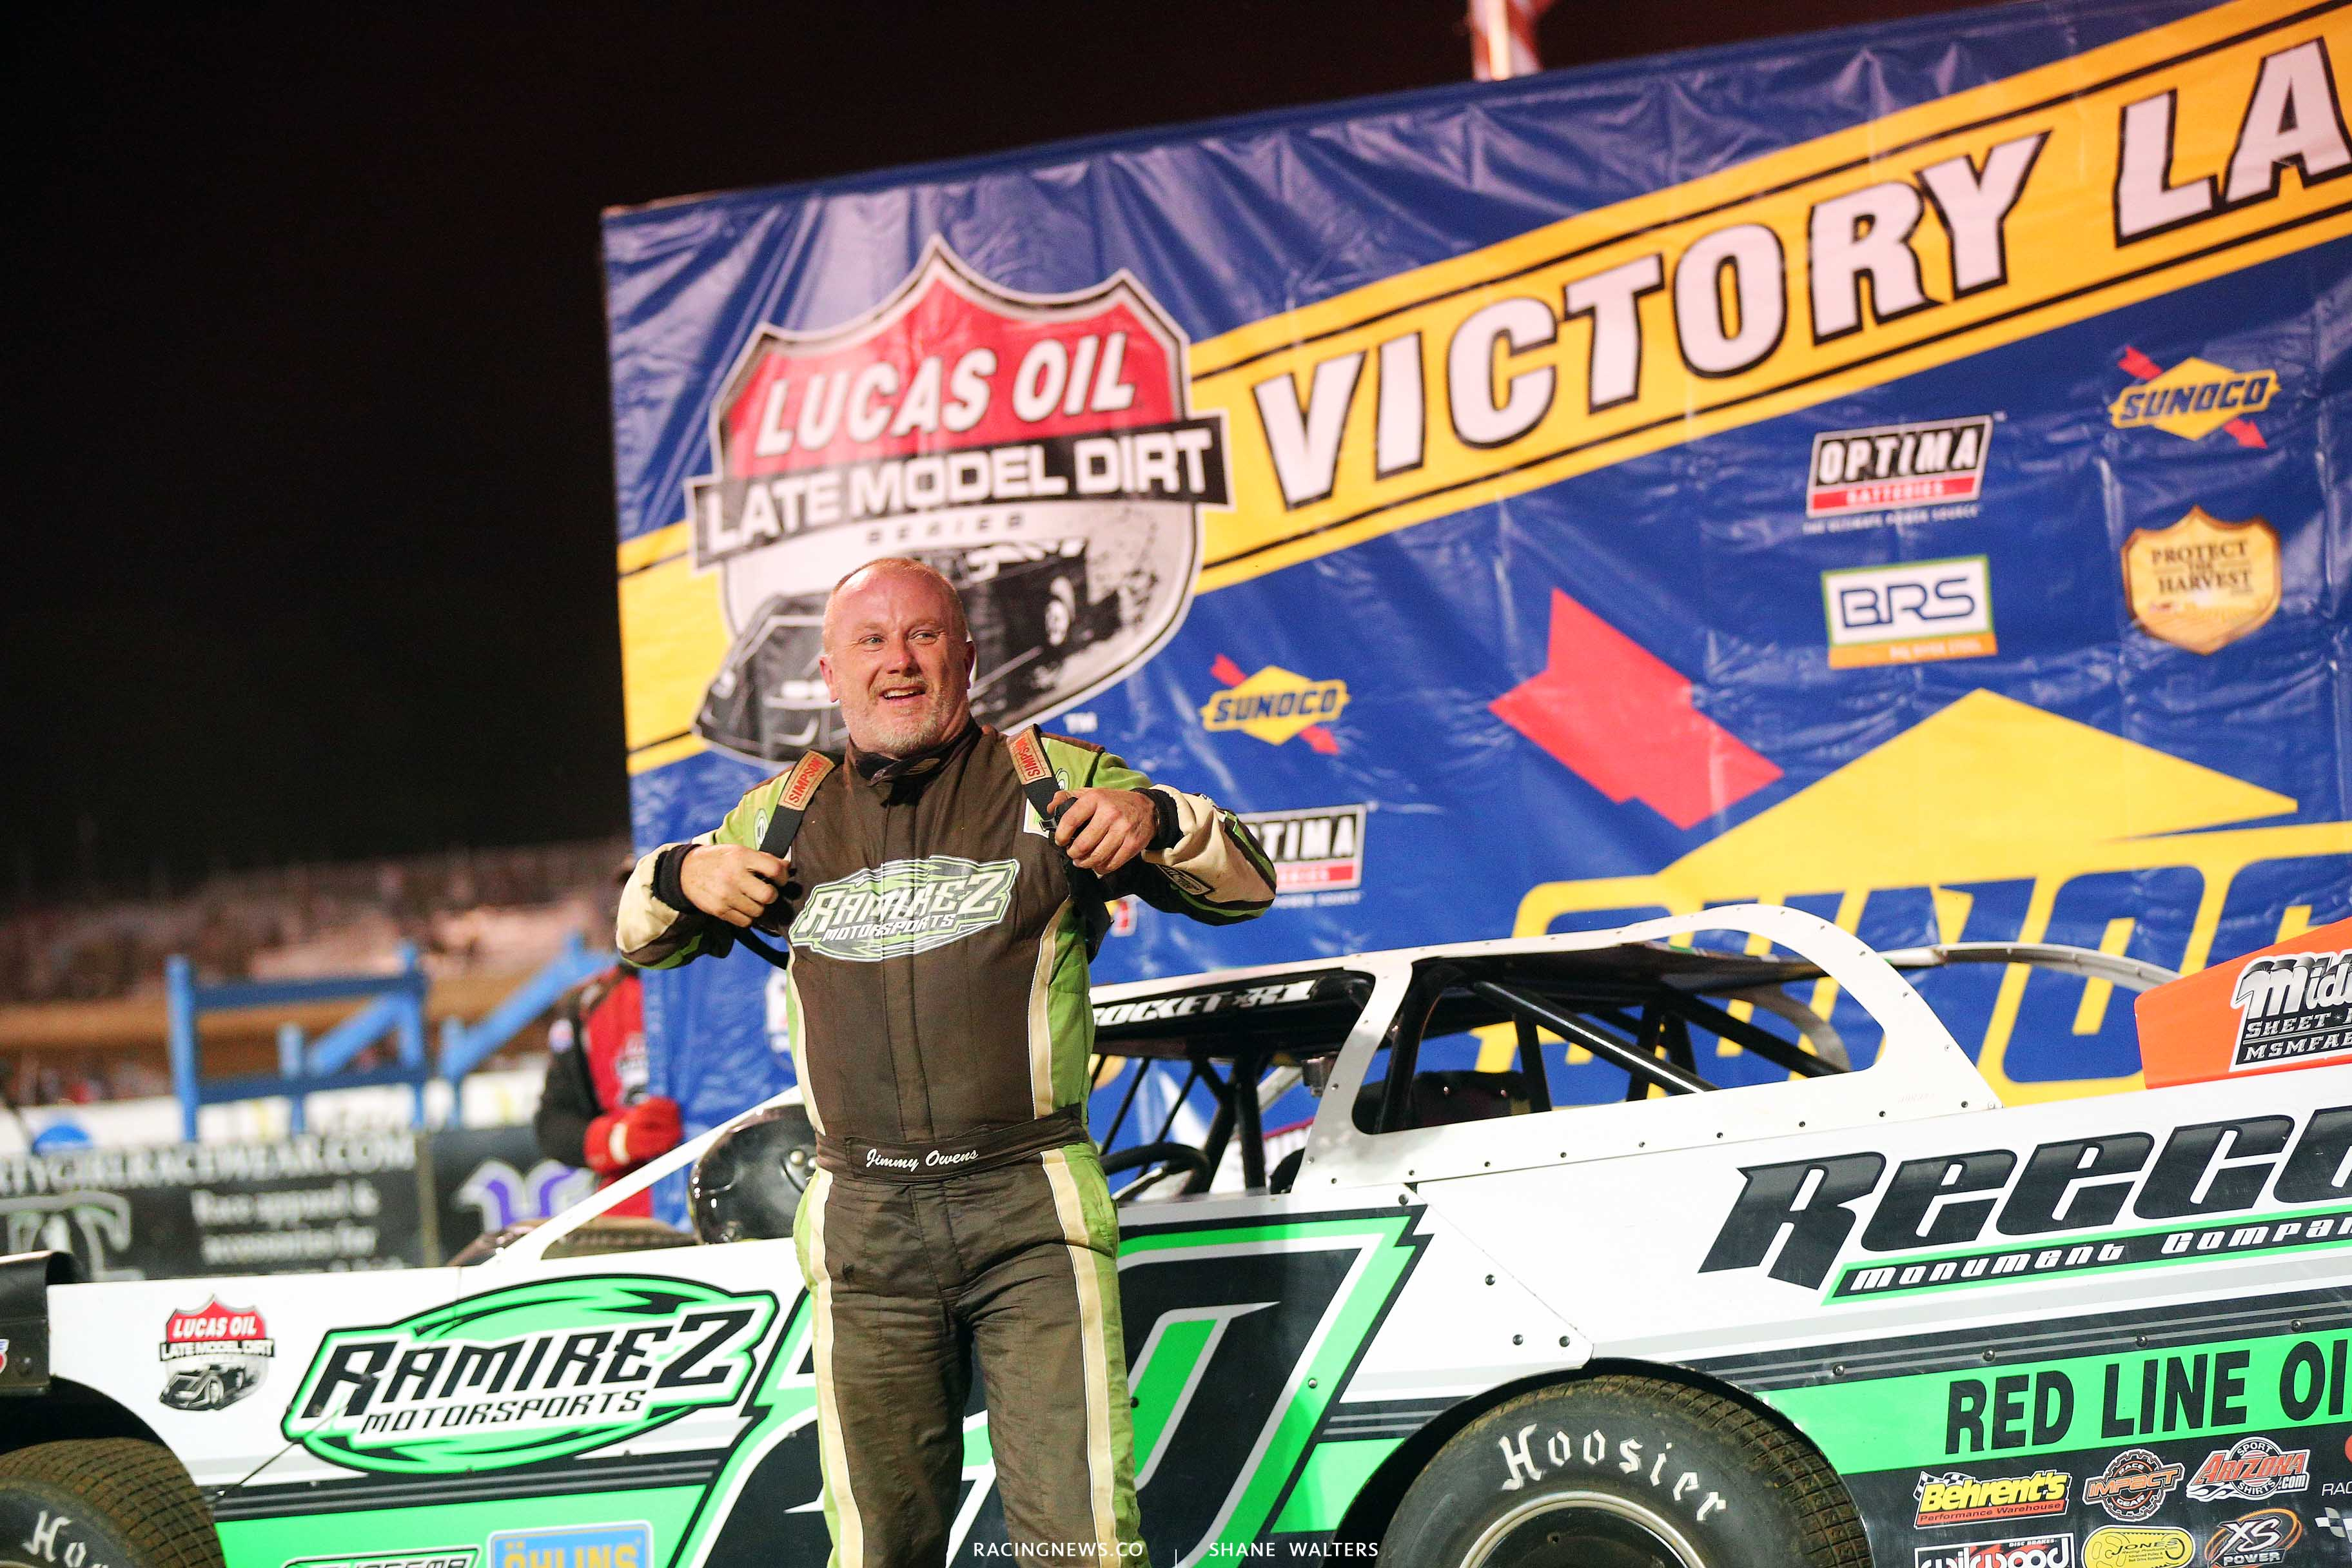 Jimmy Owens in Lucas Oil victory lane at Florence Speedway 0937